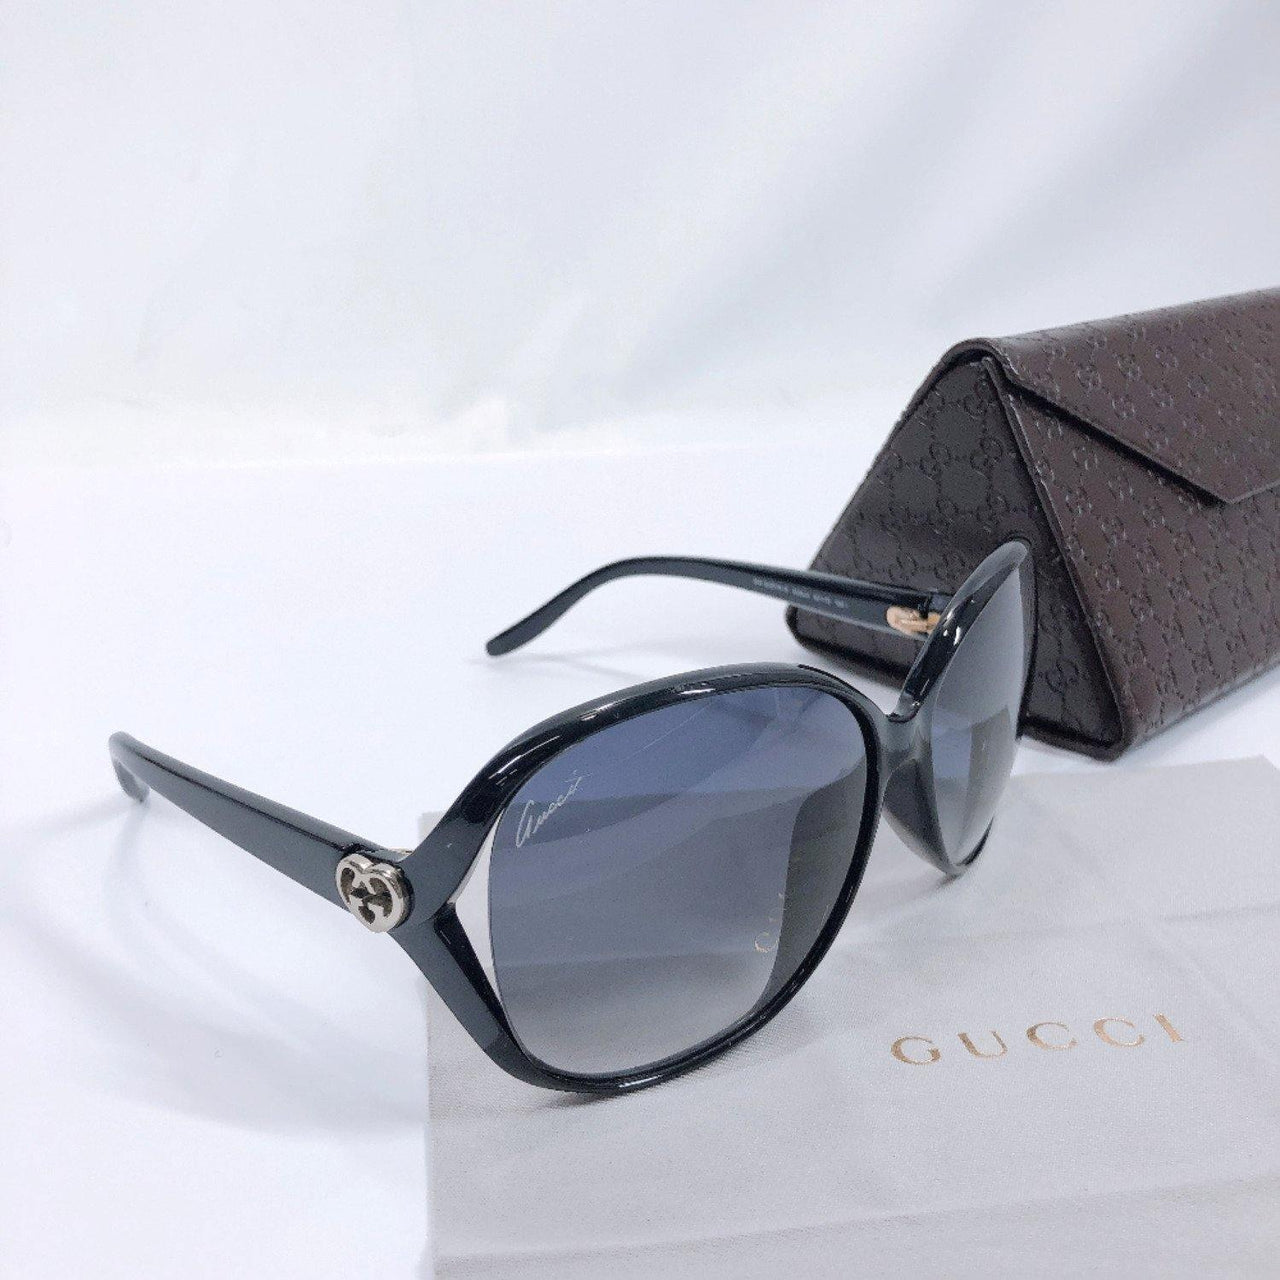 GUCCI sunglasses GG3525/K/S Interlocking G heart Synthetic resin black Women Used - JP-BRANDS.com